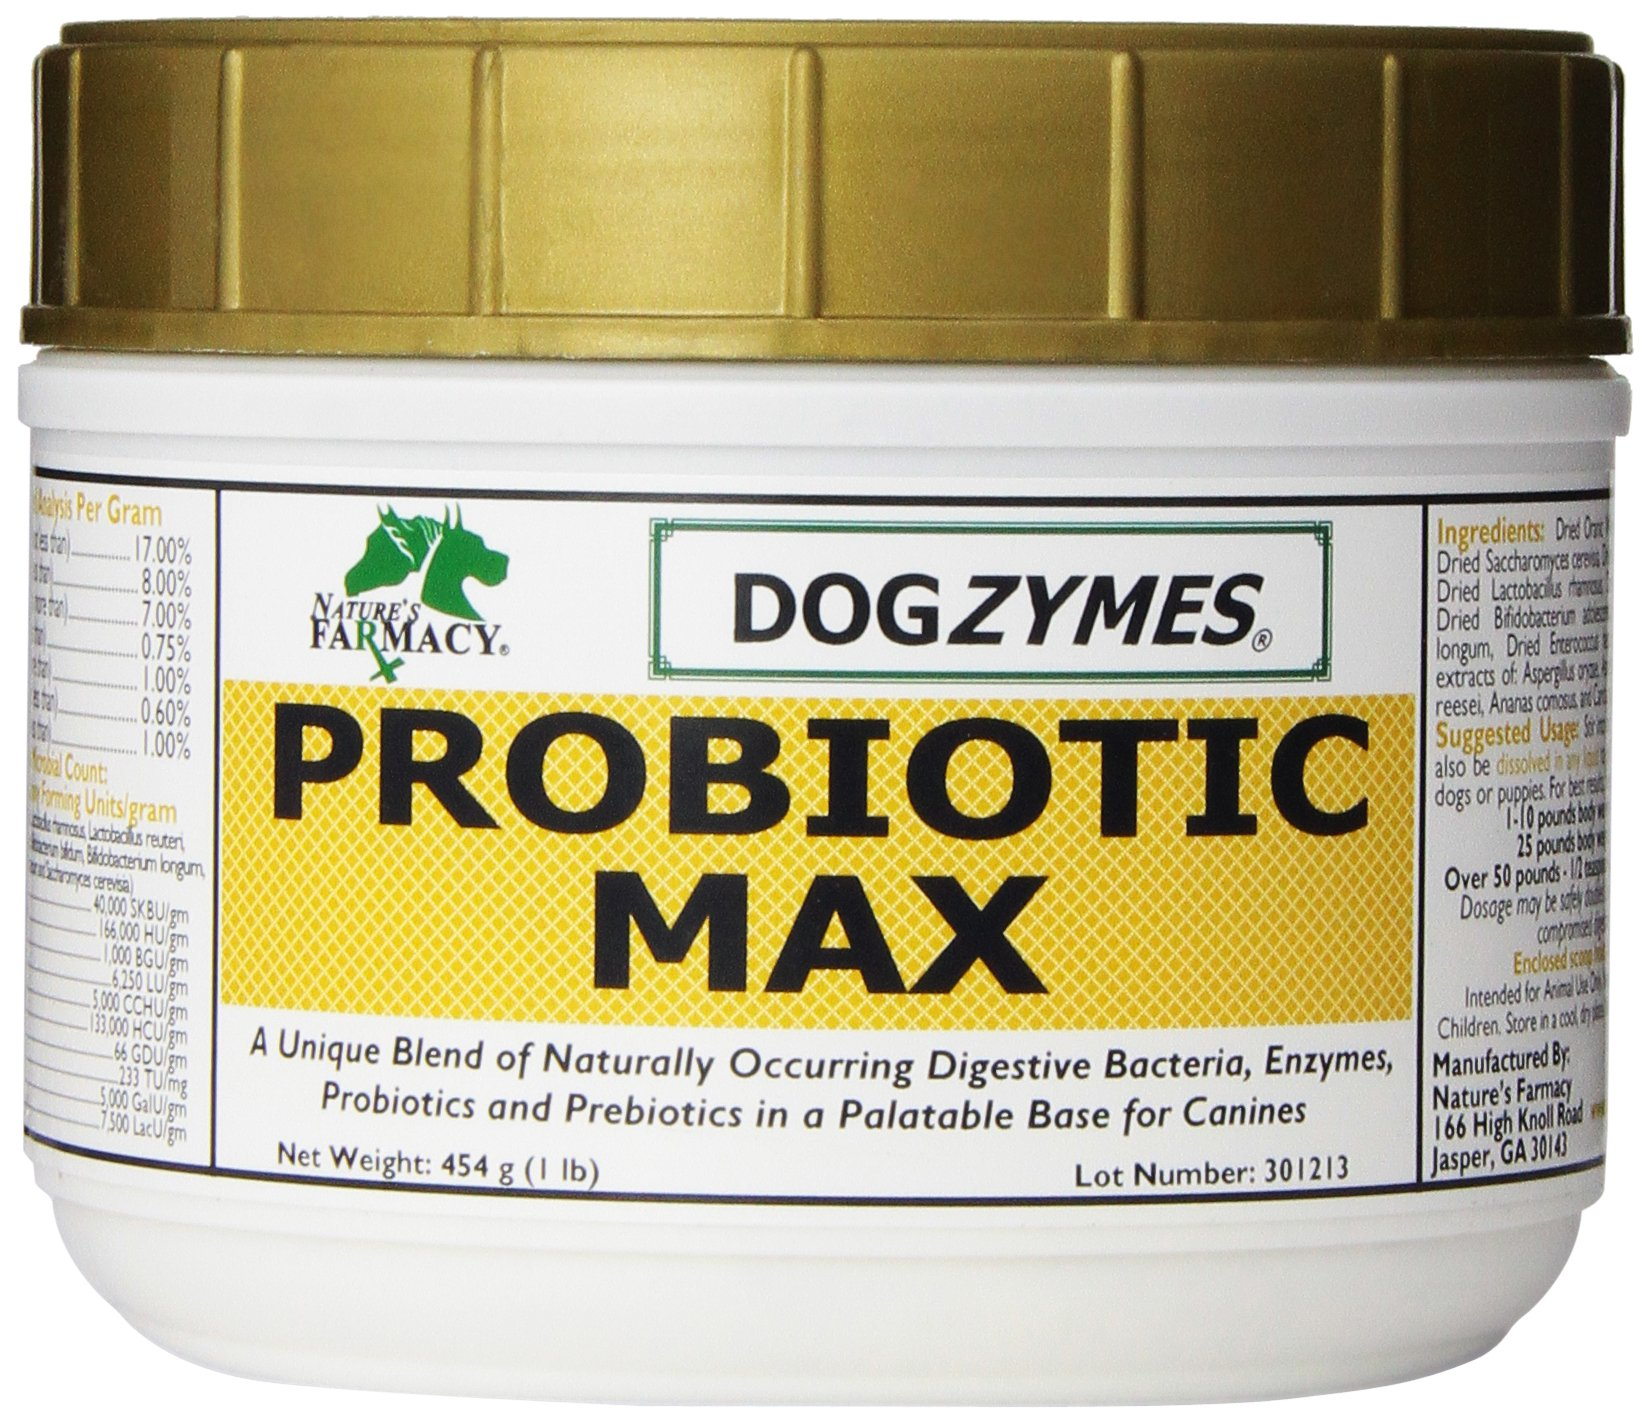 Nature's Farmacy Inc Dogzymes Probiotic Max, 1-Pound